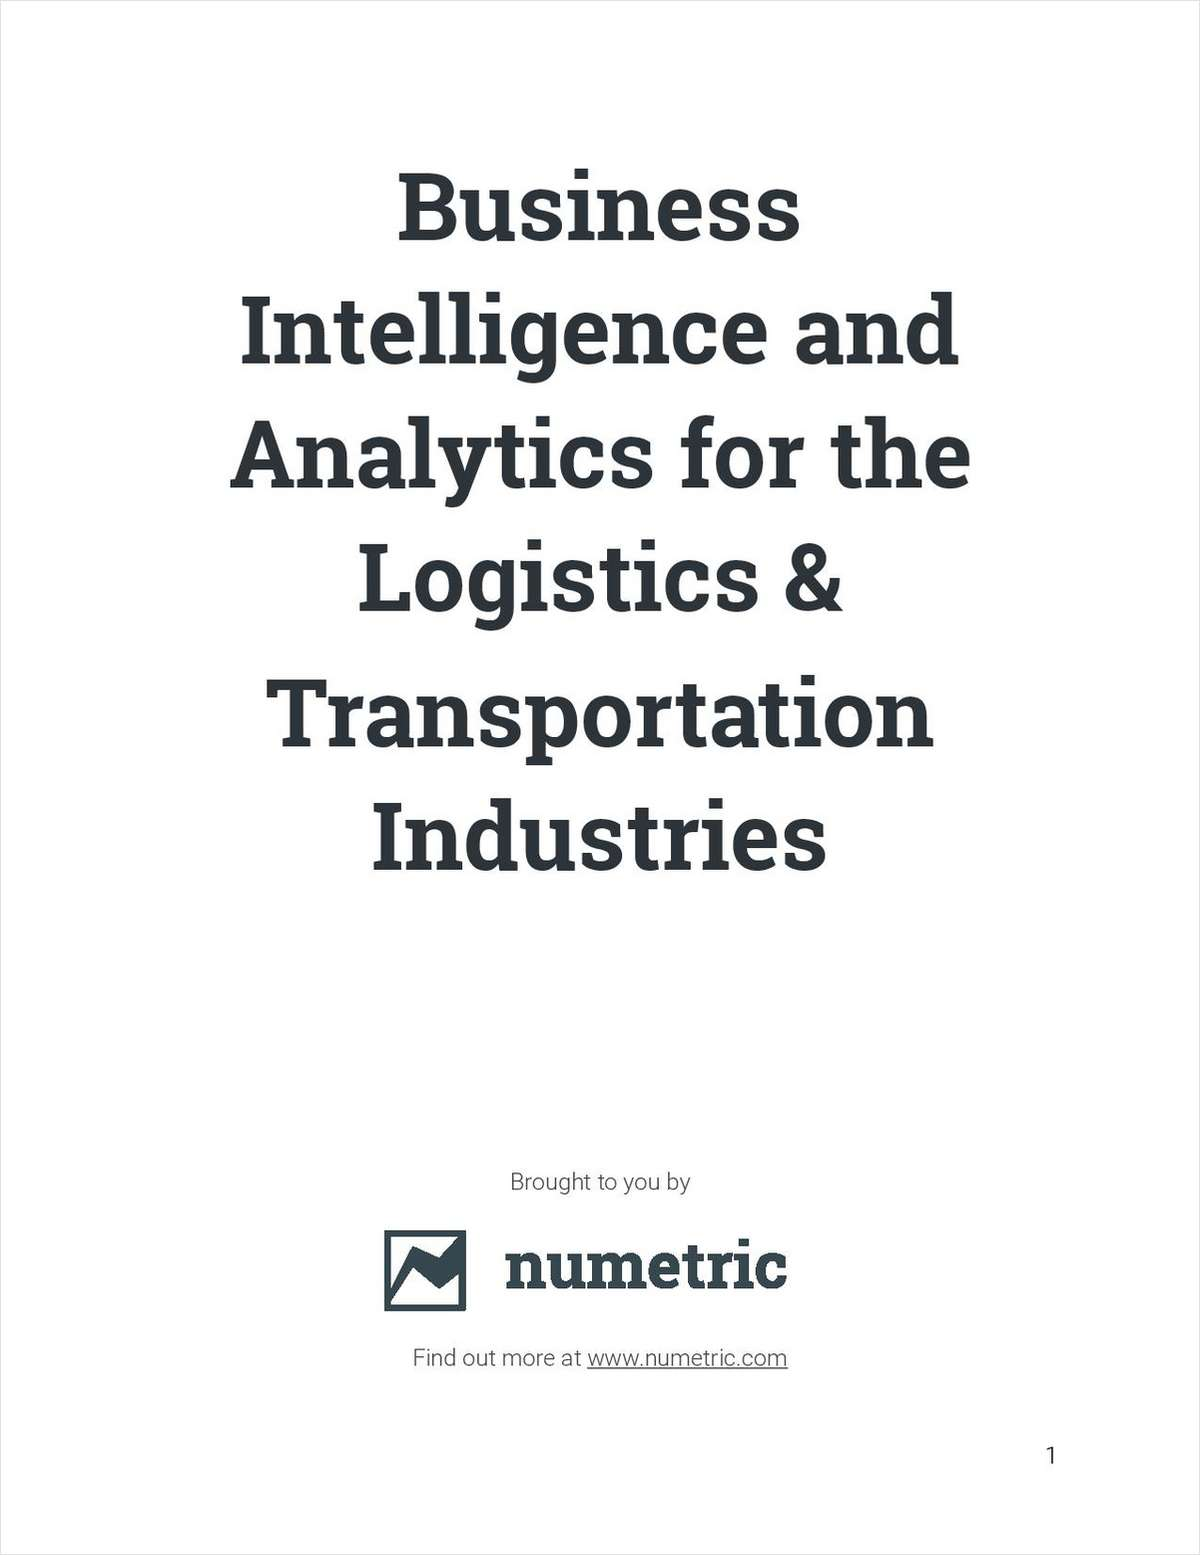 Business Intelligence and Analytics for the Logistics, Transportation, and Supply Chain Industries